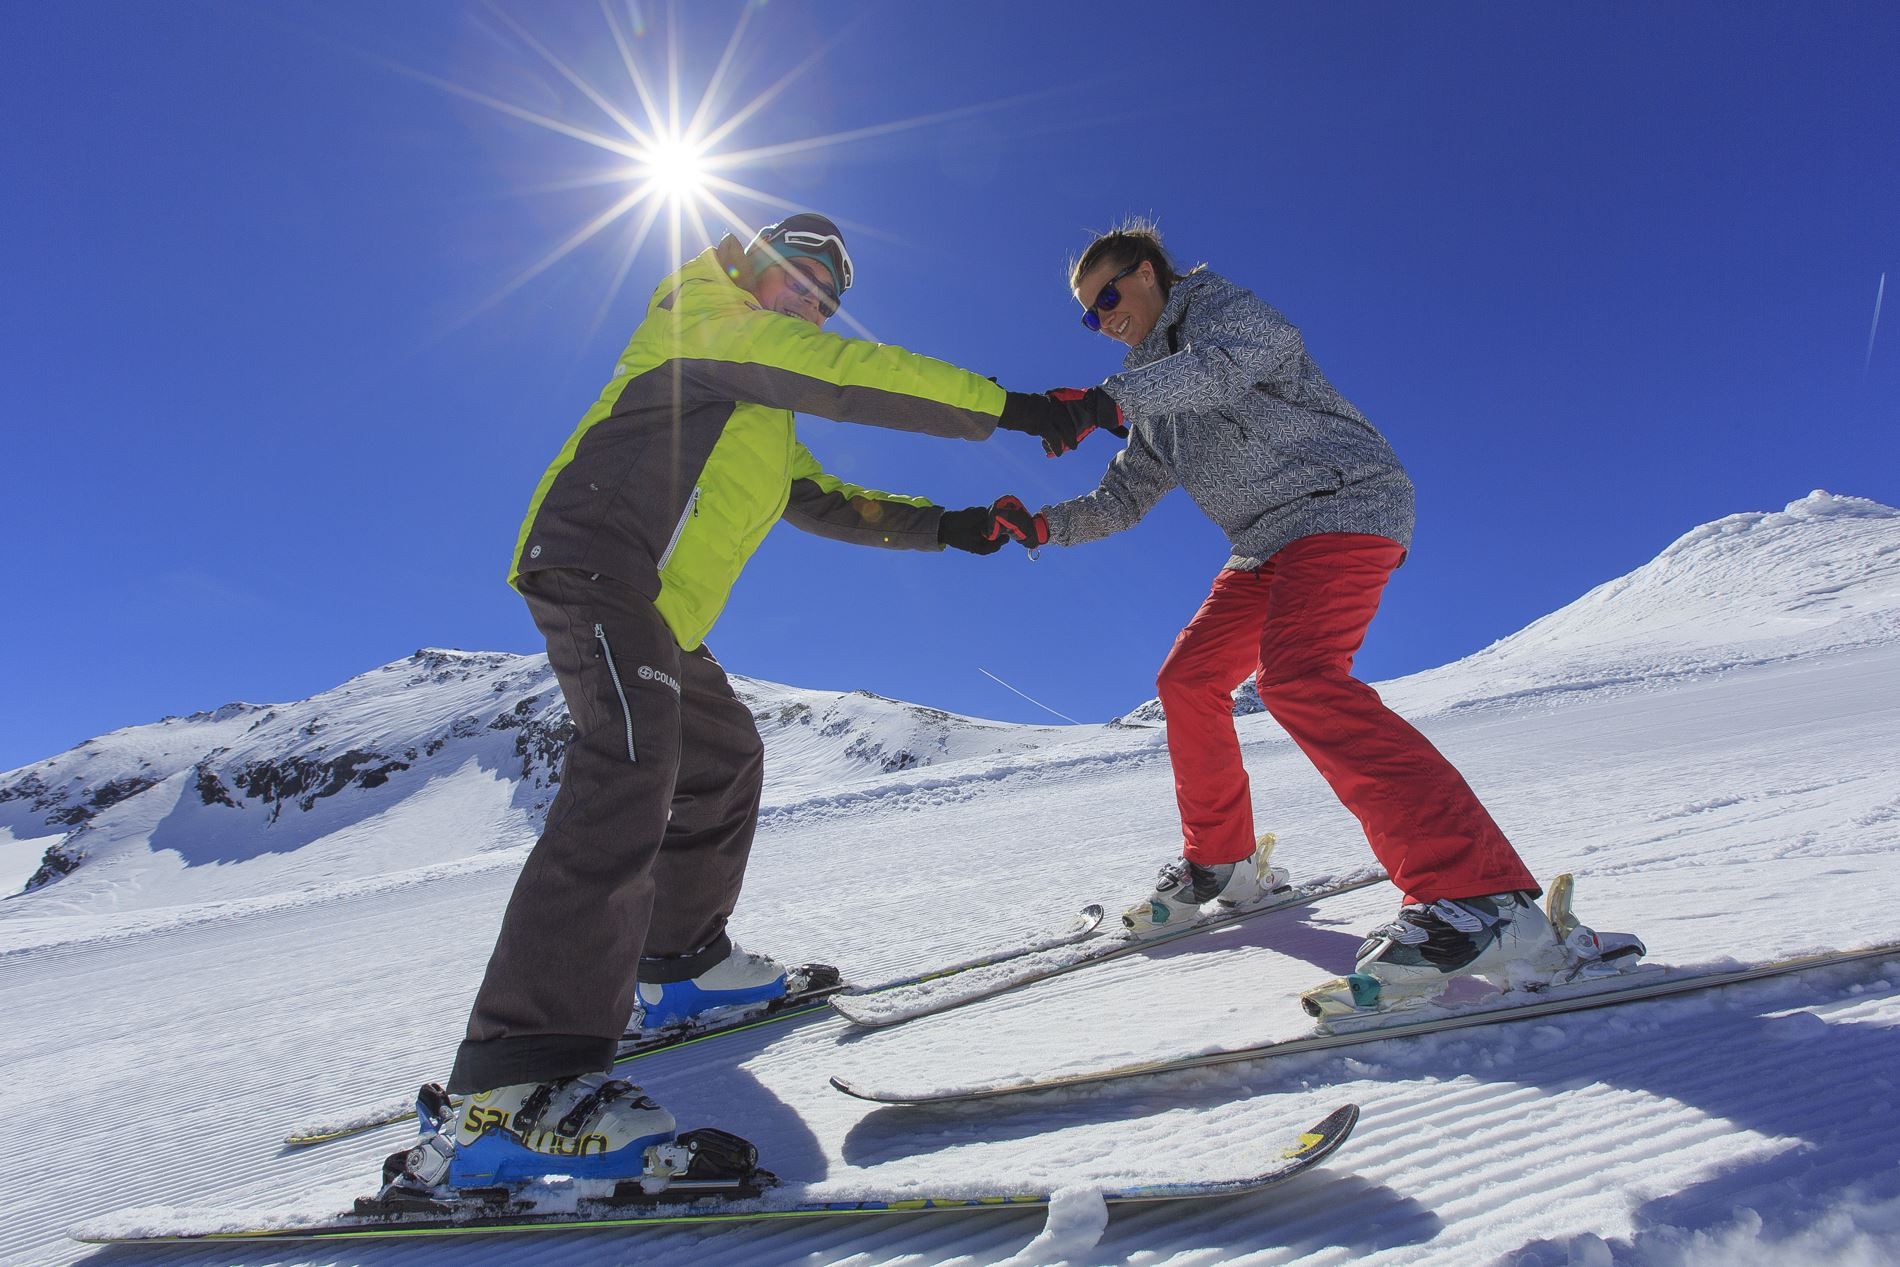 Group Ski Lessons for adults, 5 afternoons